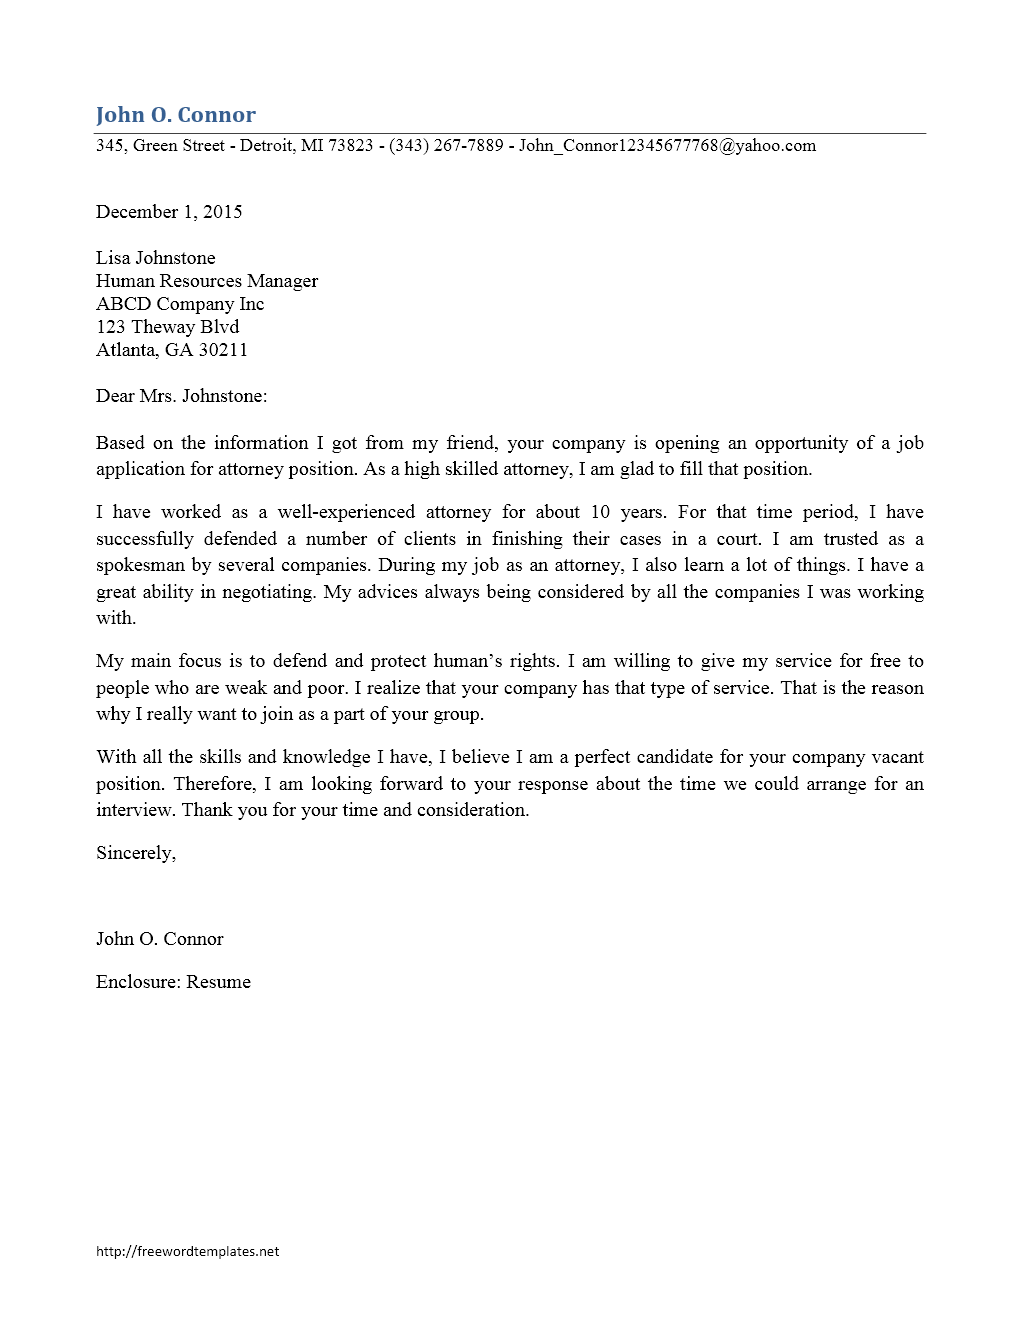 Attorney Cover Letter – Lawyer Resume Cover Letter